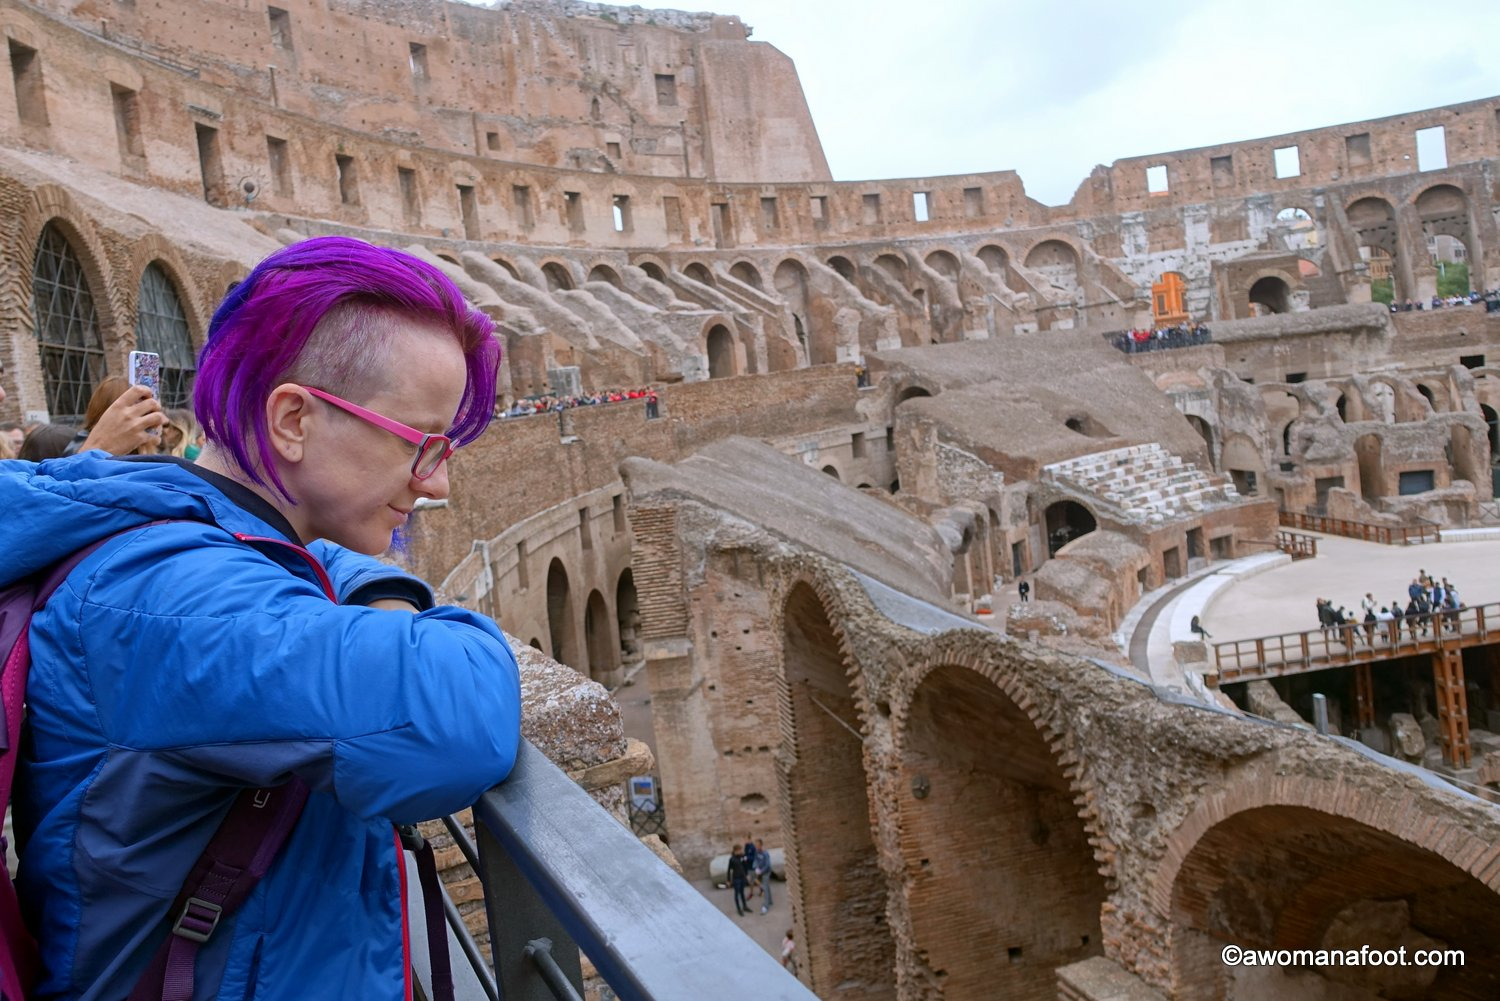 Colosseum: the symbol of Ancient Rome. What is it like to finally see with your own eyes? Read to find out. | Rome | Italy | Must-see in Rome | What to do in Rome | Ancient Architecture | Europe | travel| Awomanafoot.com